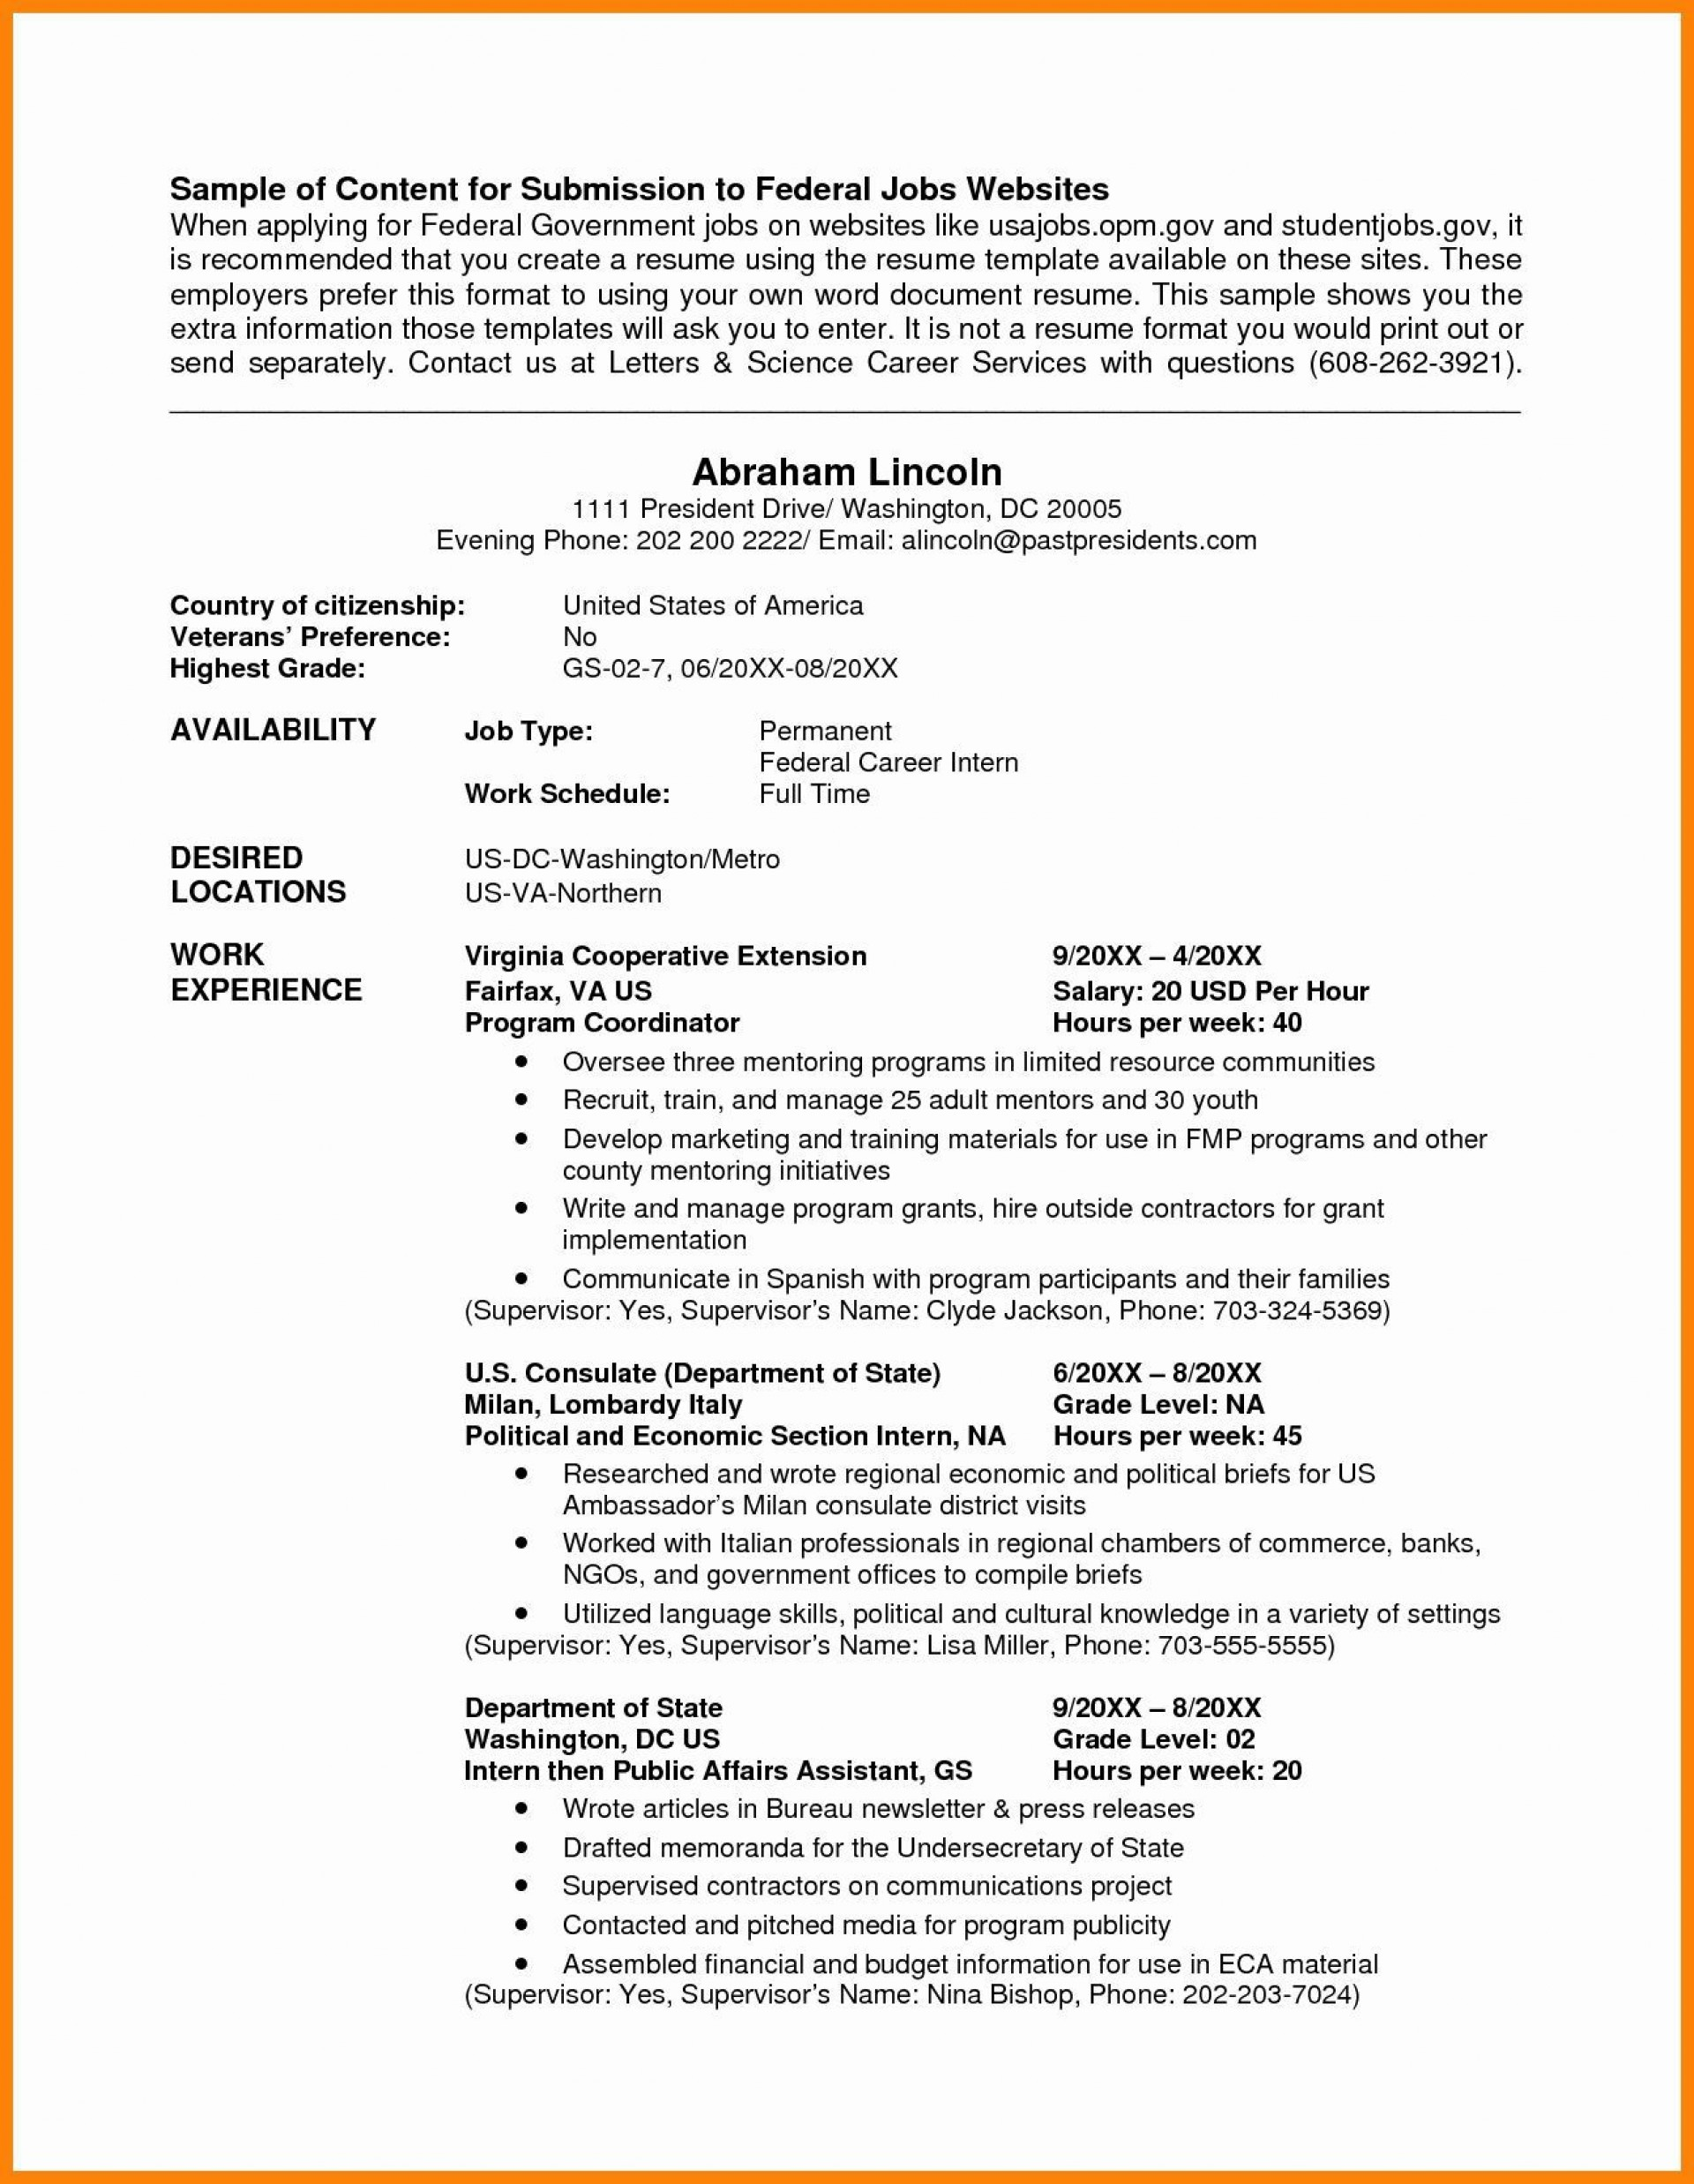 004 Incredible Usa Job Resume Template High Def  Builder Usajob Federal1920